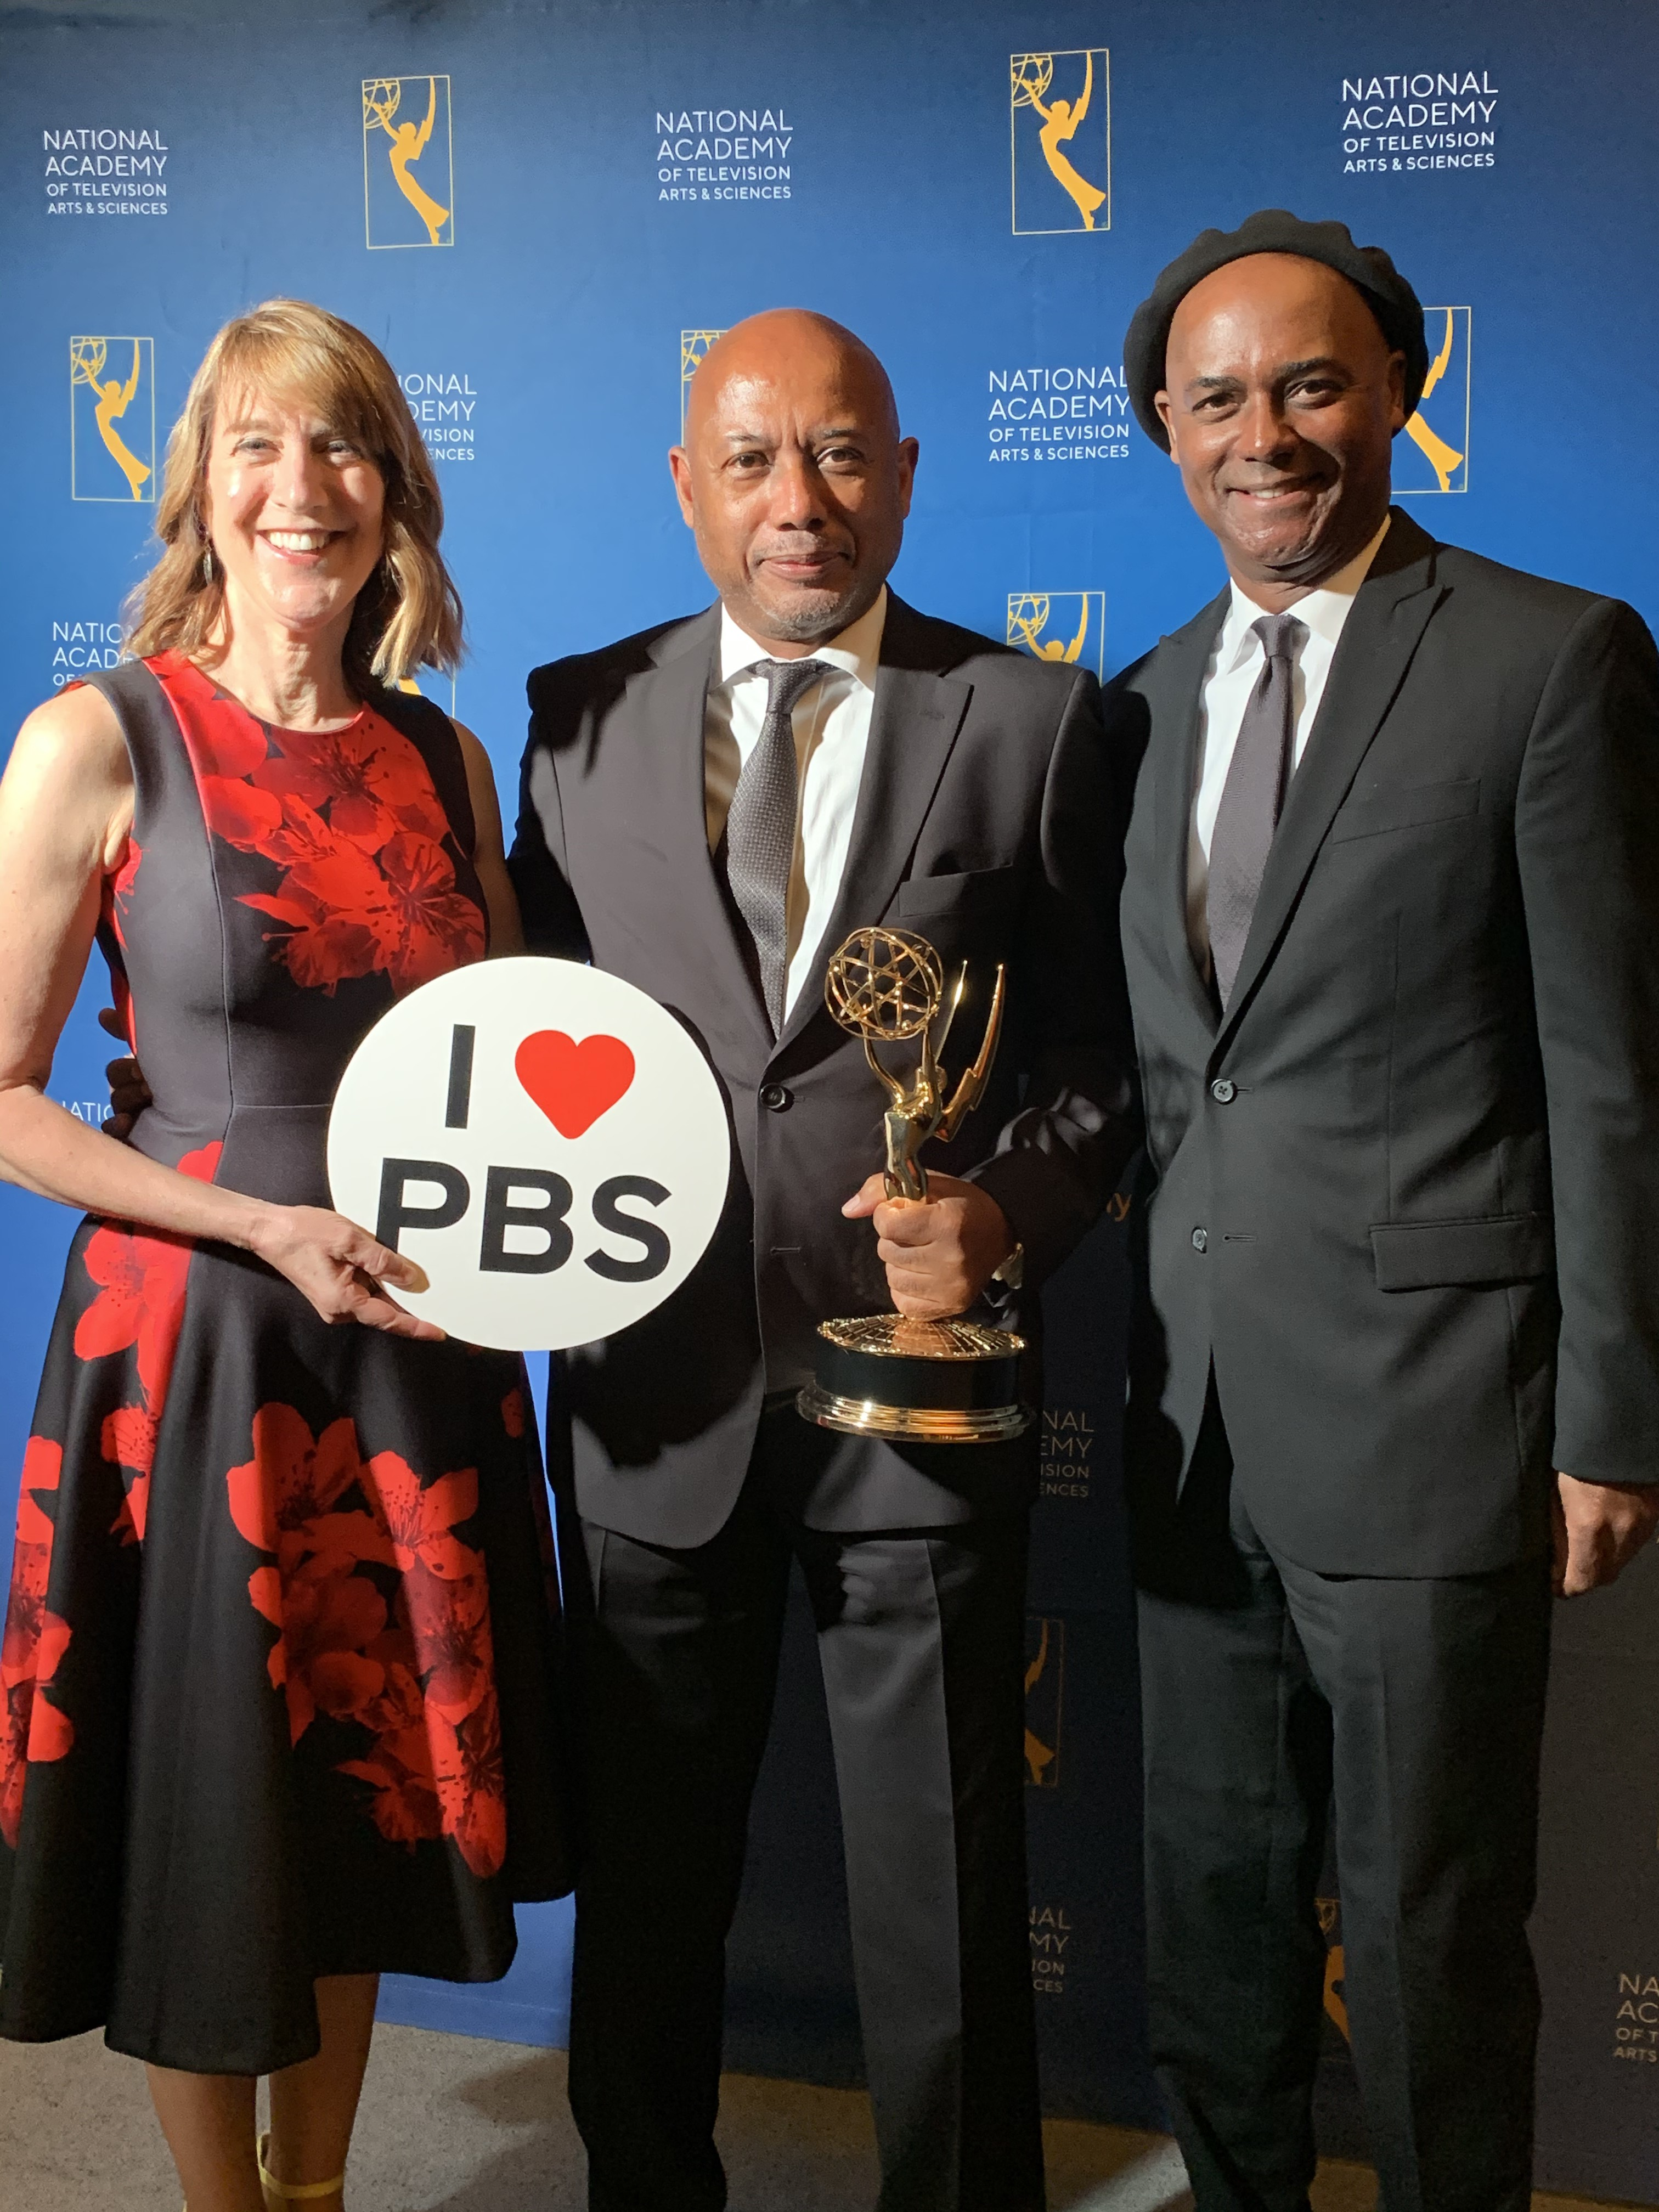 Lois Vossen with Raoul Peck and Herbert Peck for I Am Not Your Negro Emmy win